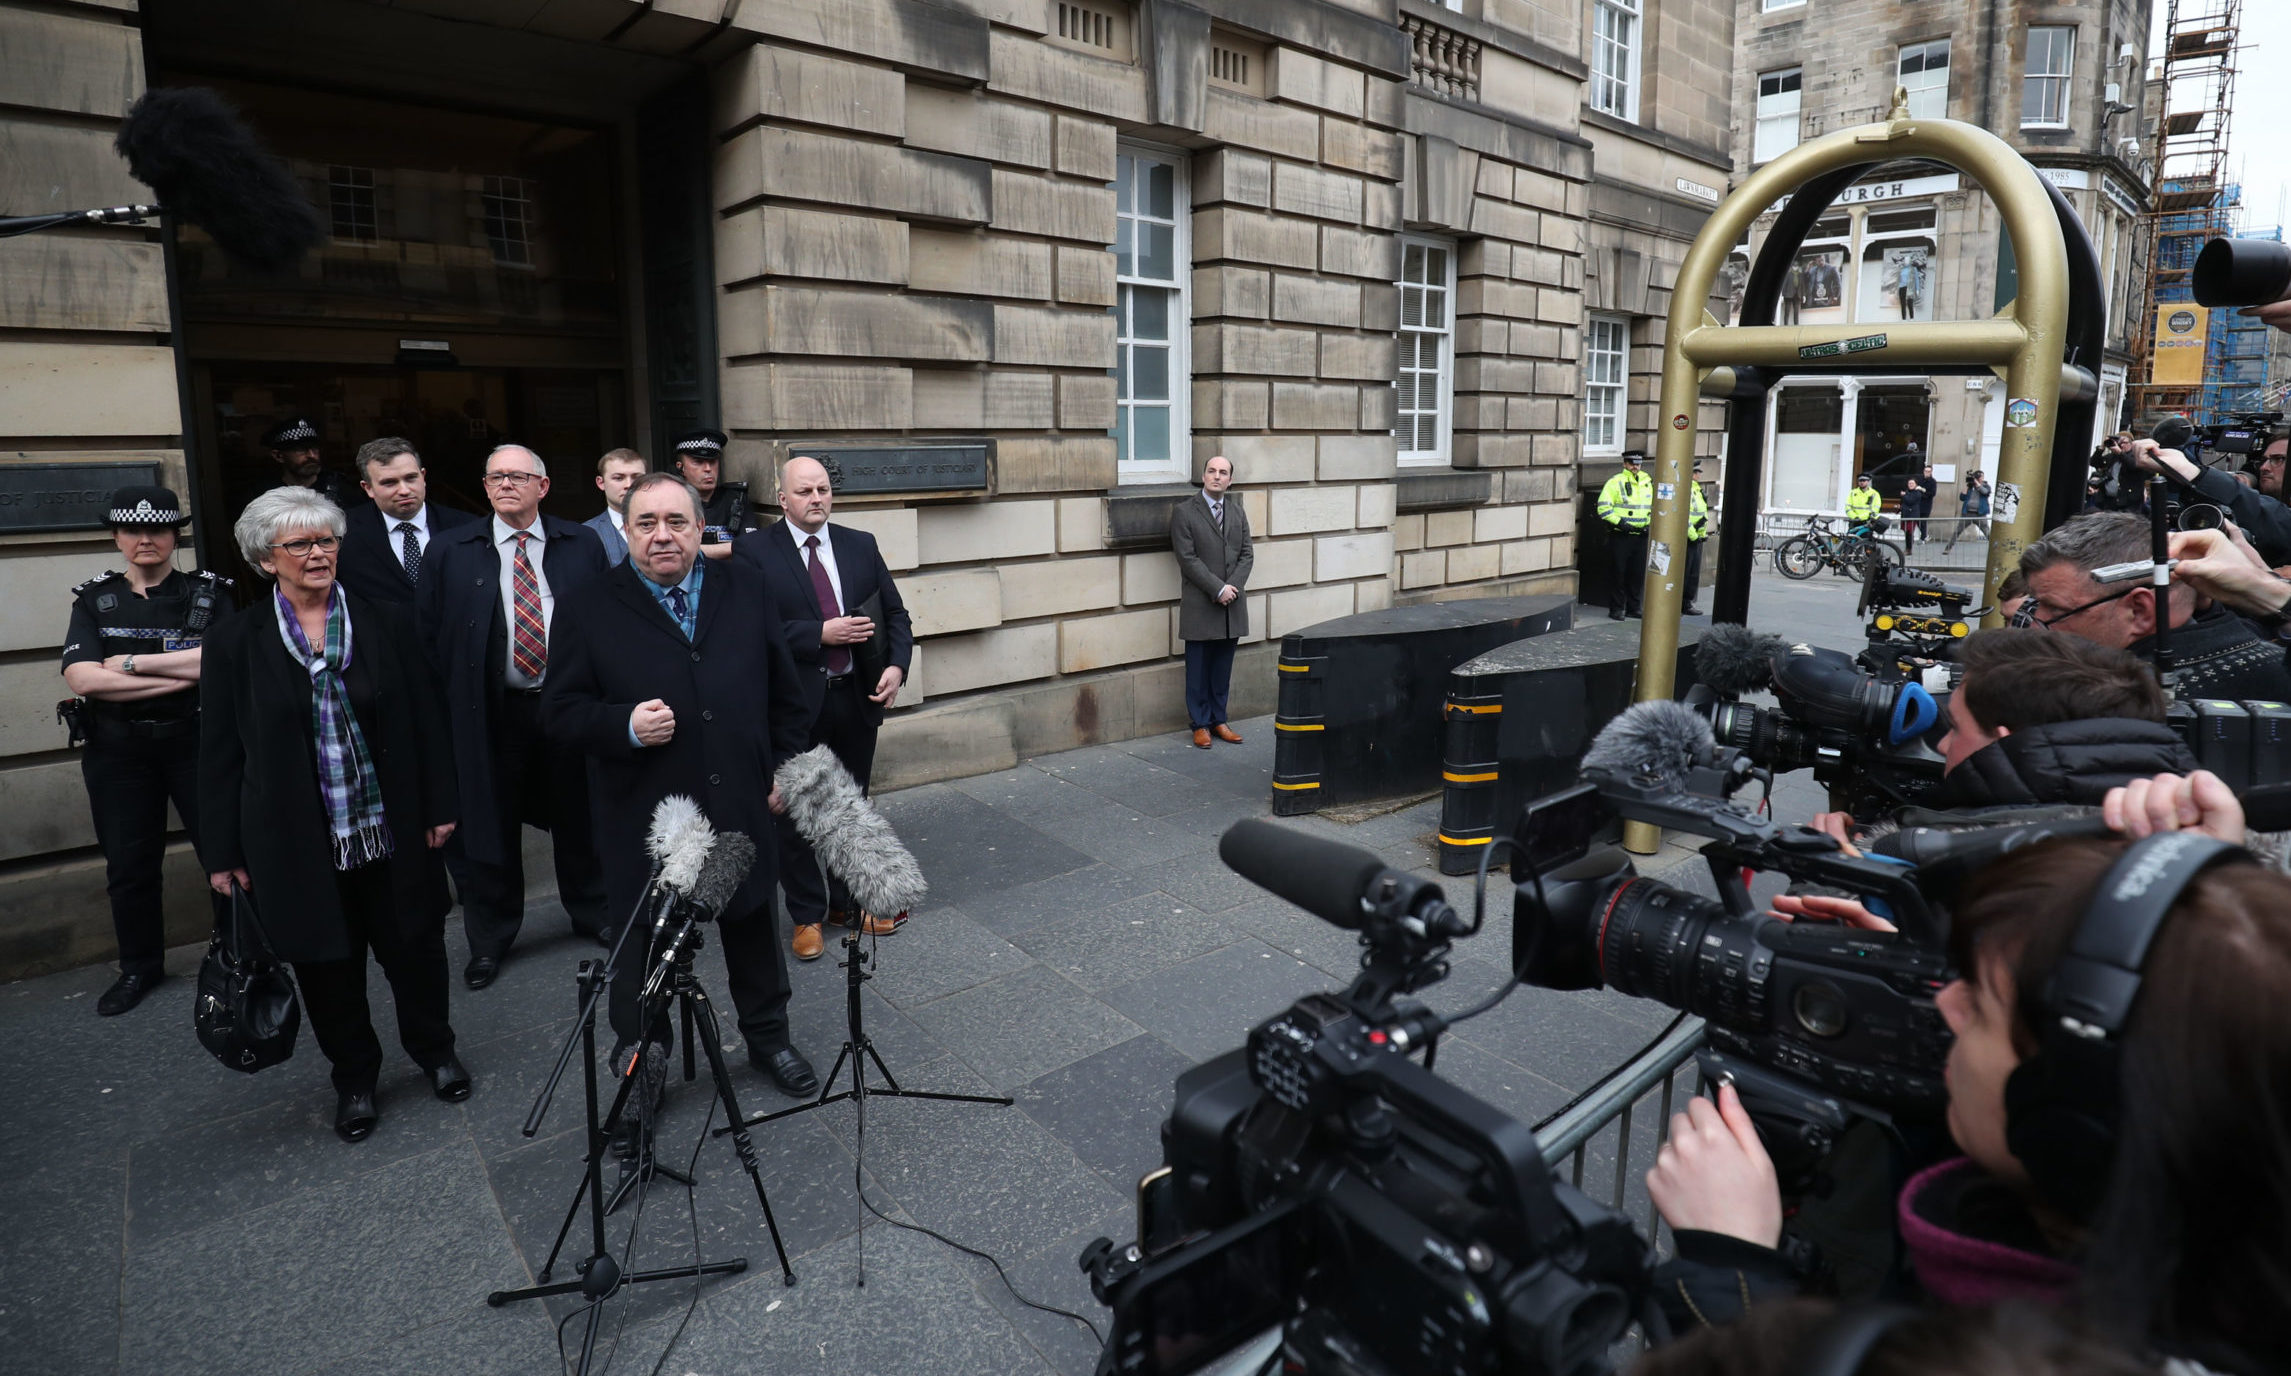 Alex Salmond (left) speaks to the media as he leaves the High Court in Edinburgh after he was cleared of attempted rape and a series of sexual assaults